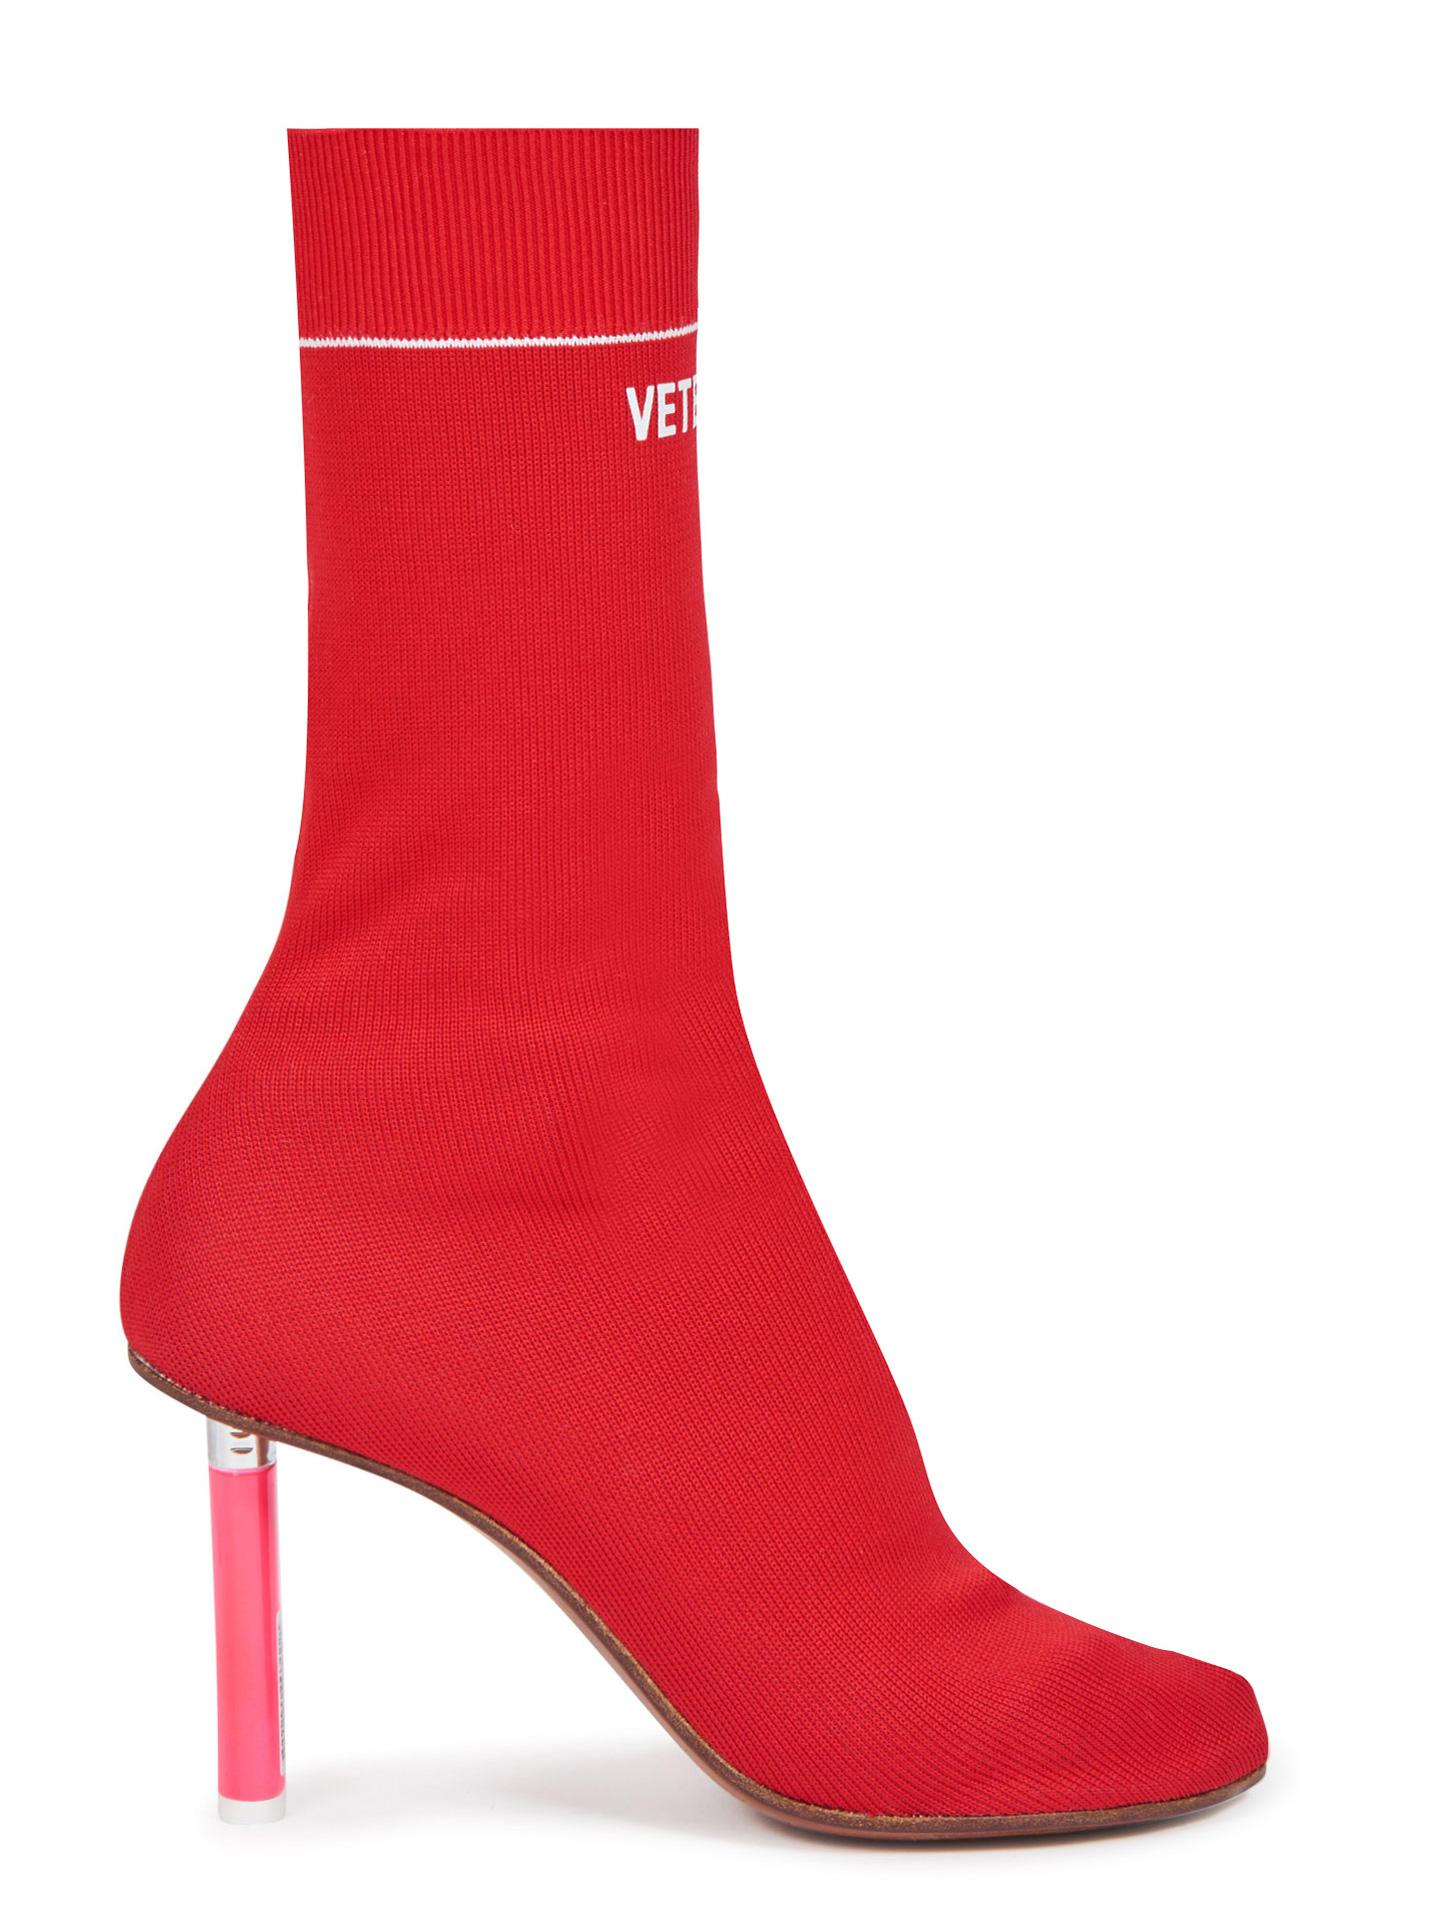 Lyst Vetements Lighter Heel Sock Ankle Boots In Red